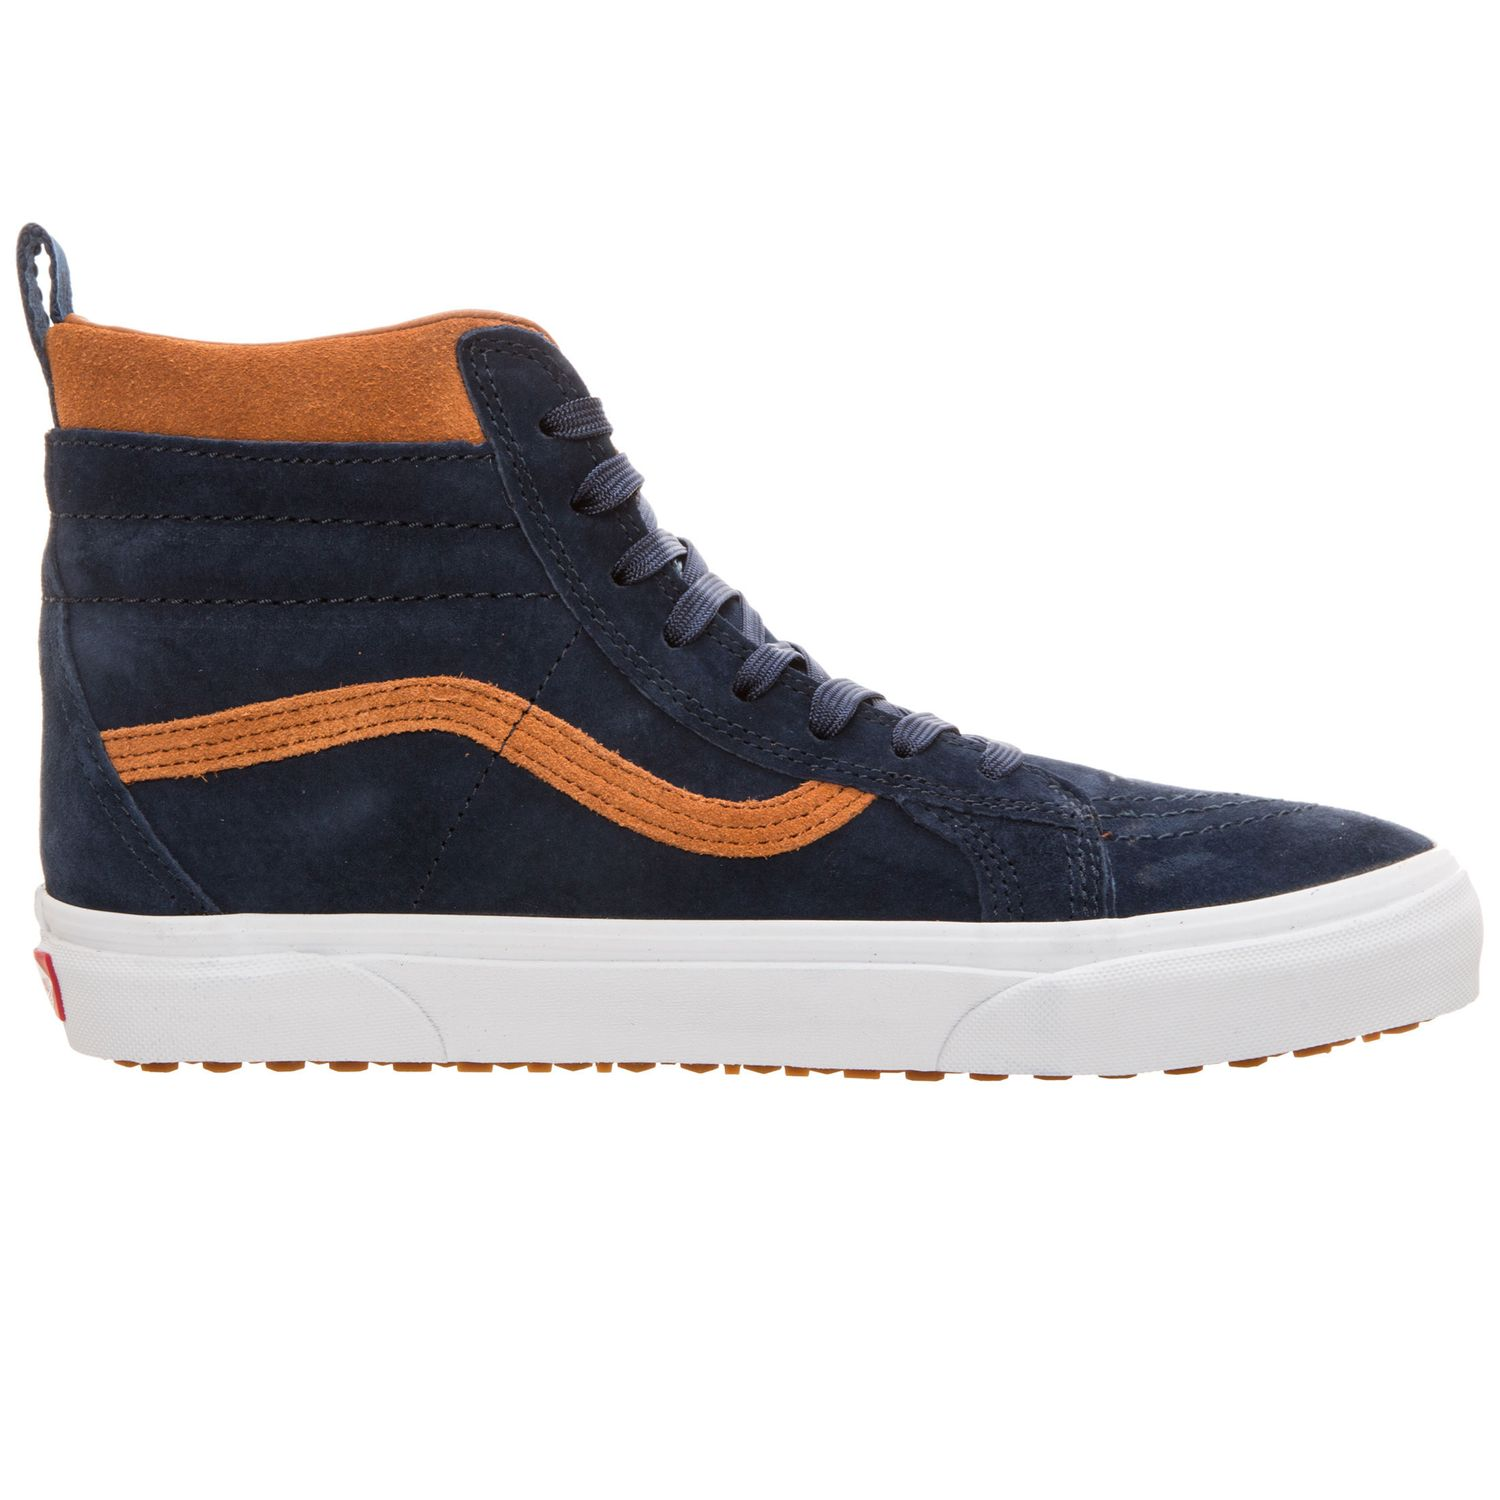 Vans Sk8 Hi Mte Herren Sneaker Suede dress blues